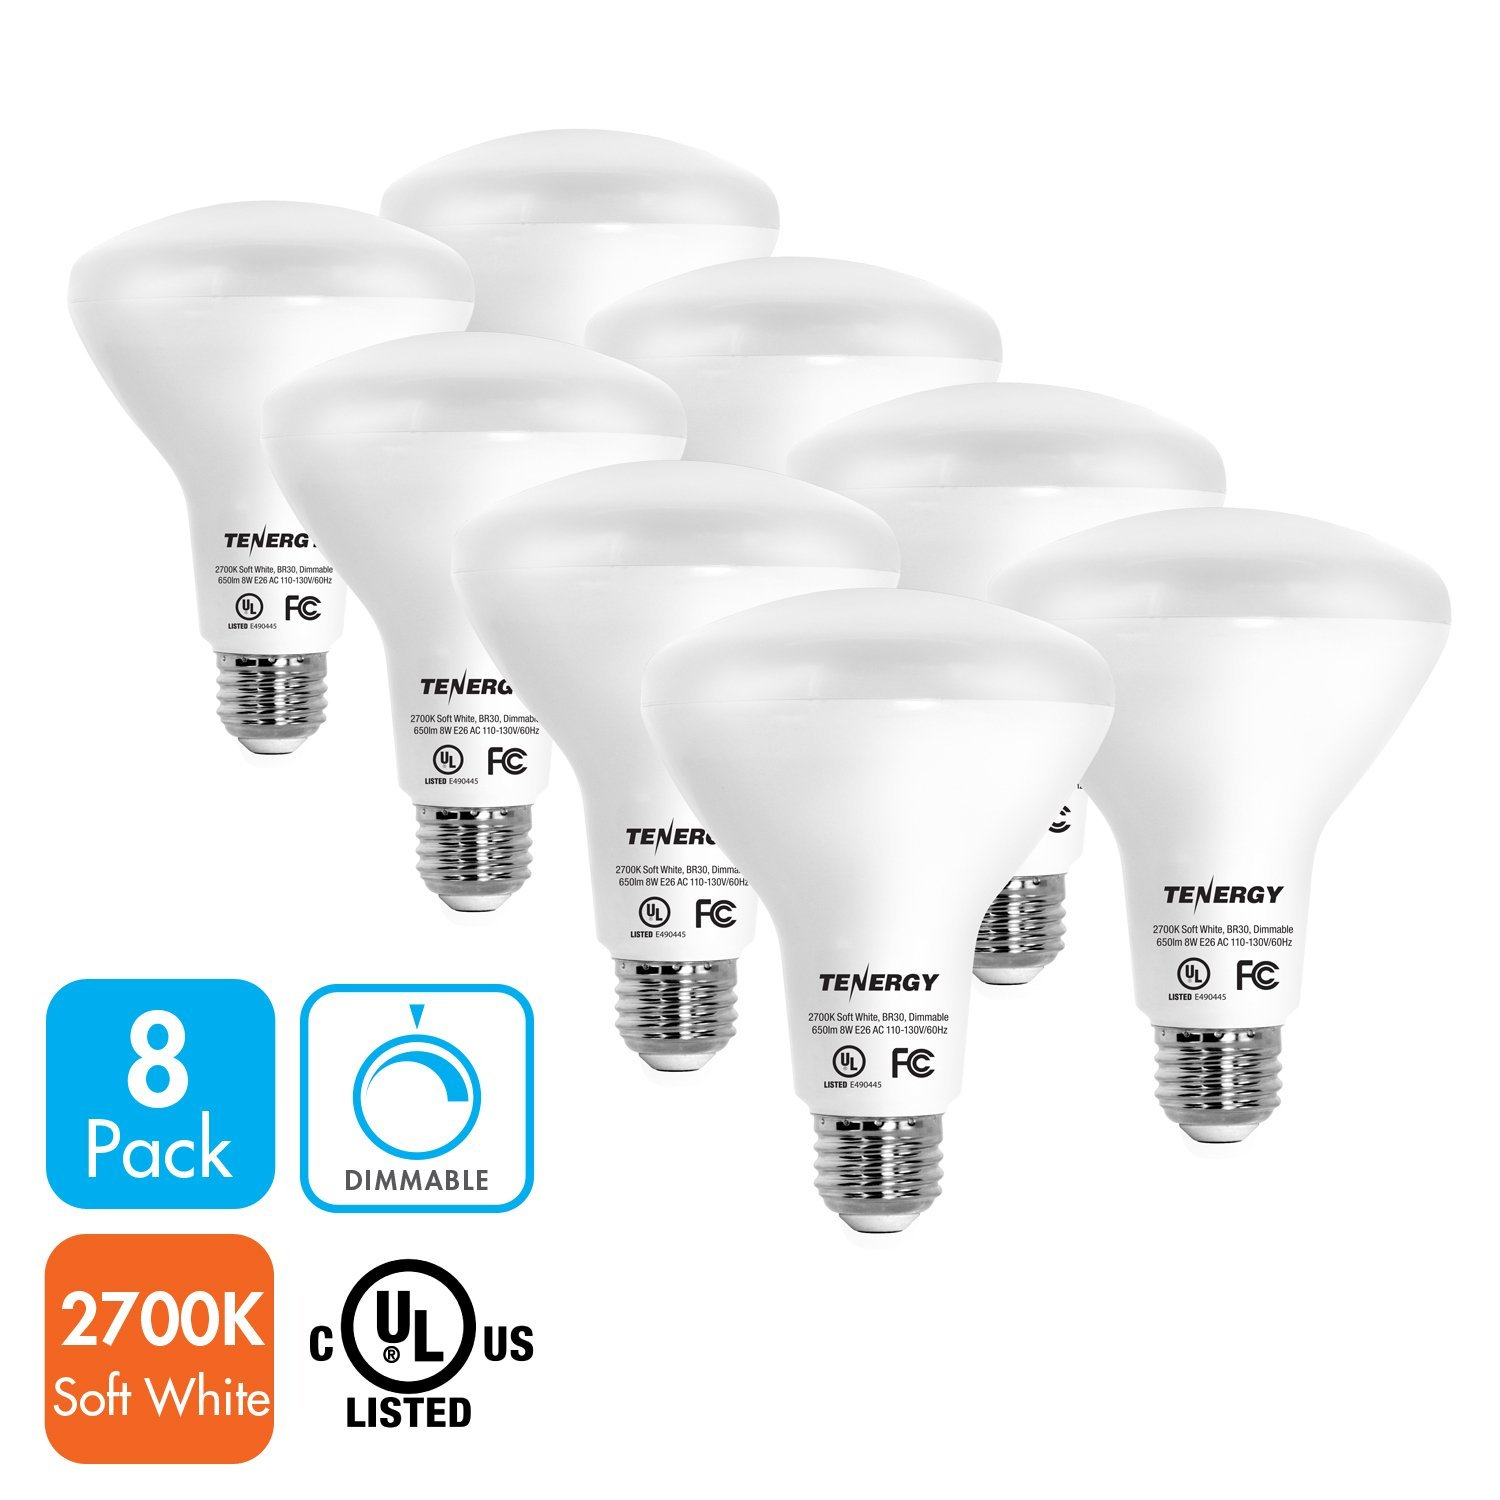 Tenergy tenergy dimmable led flood light bulbs 60 watt equivalent tenergy dimmable led flood light bulbs 60 watt equivalent 8w warm white soft mozeypictures Choice Image